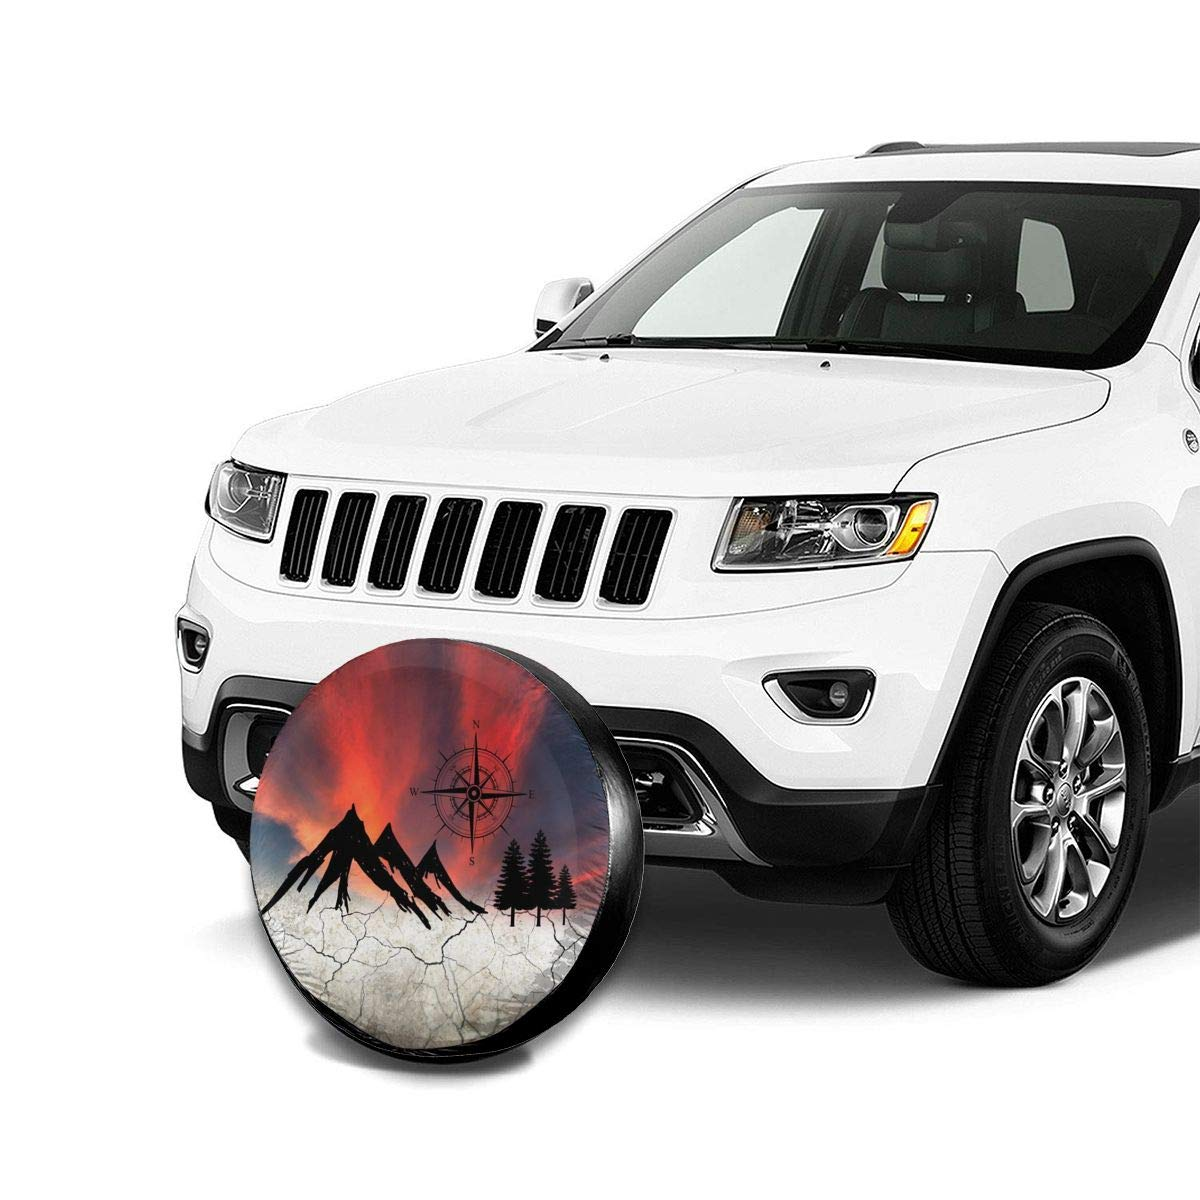 Deaowangluo Spare Tire Cover Jeep Mountain Compass Nature Camper Camping Trailer Truck RV SUV Covers Travel Universal 15 Inch